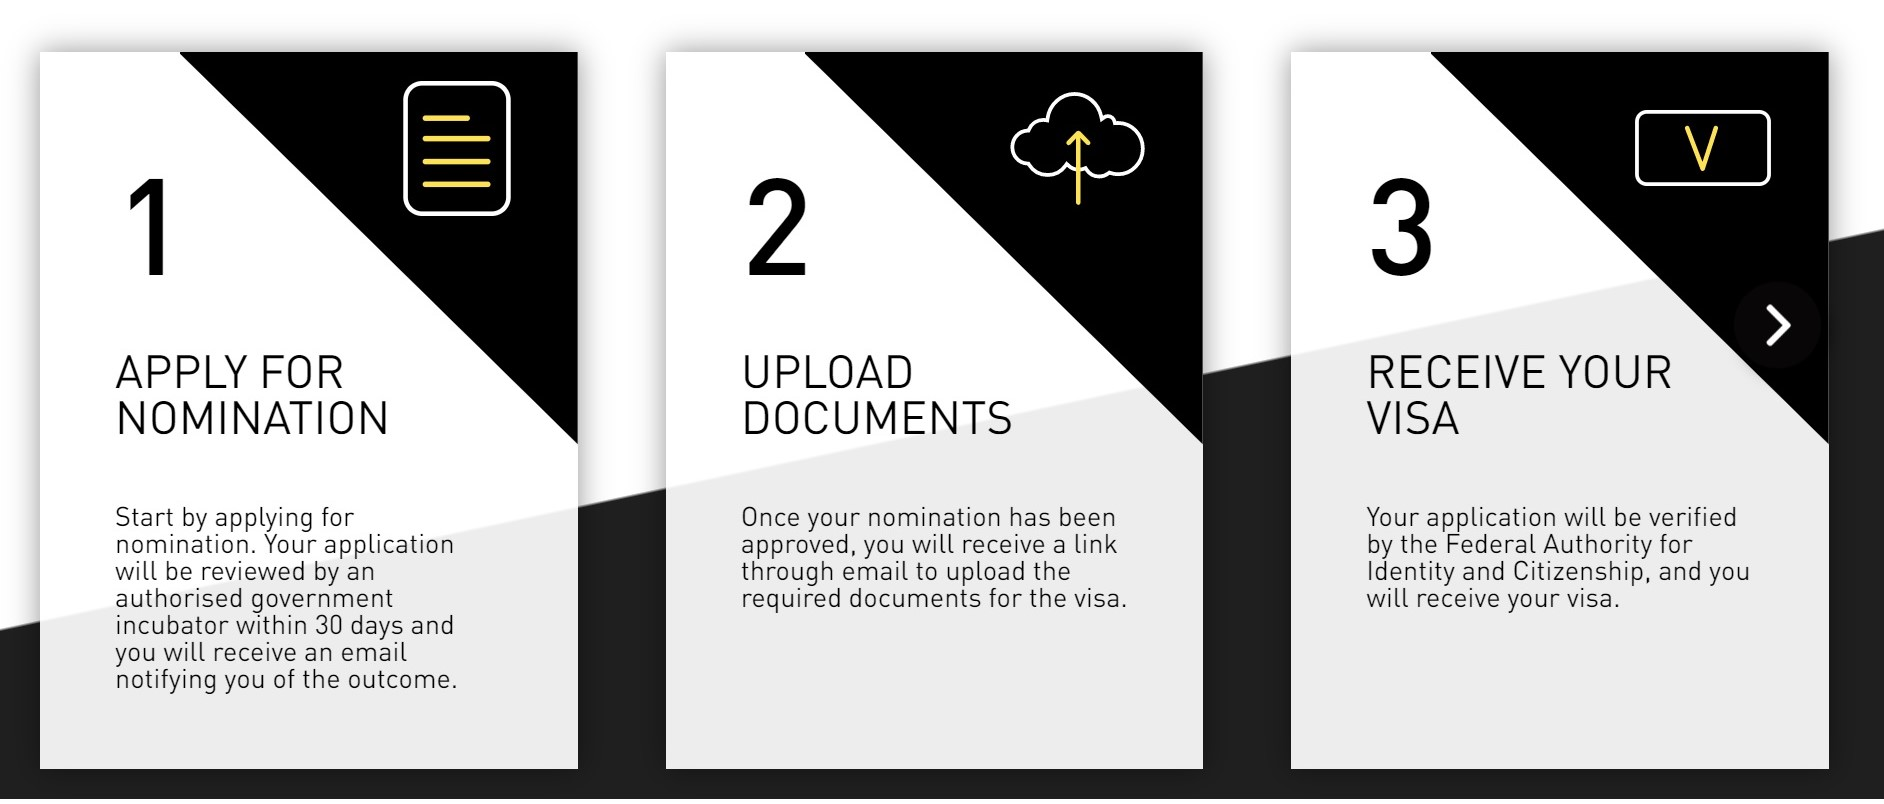 The website for the Gold Card Visa application has been kept simple with a user-friendly interface and provides answers to some frequently asked questions. Photo Courtesy: Screenshot, UAE Golden Visa website